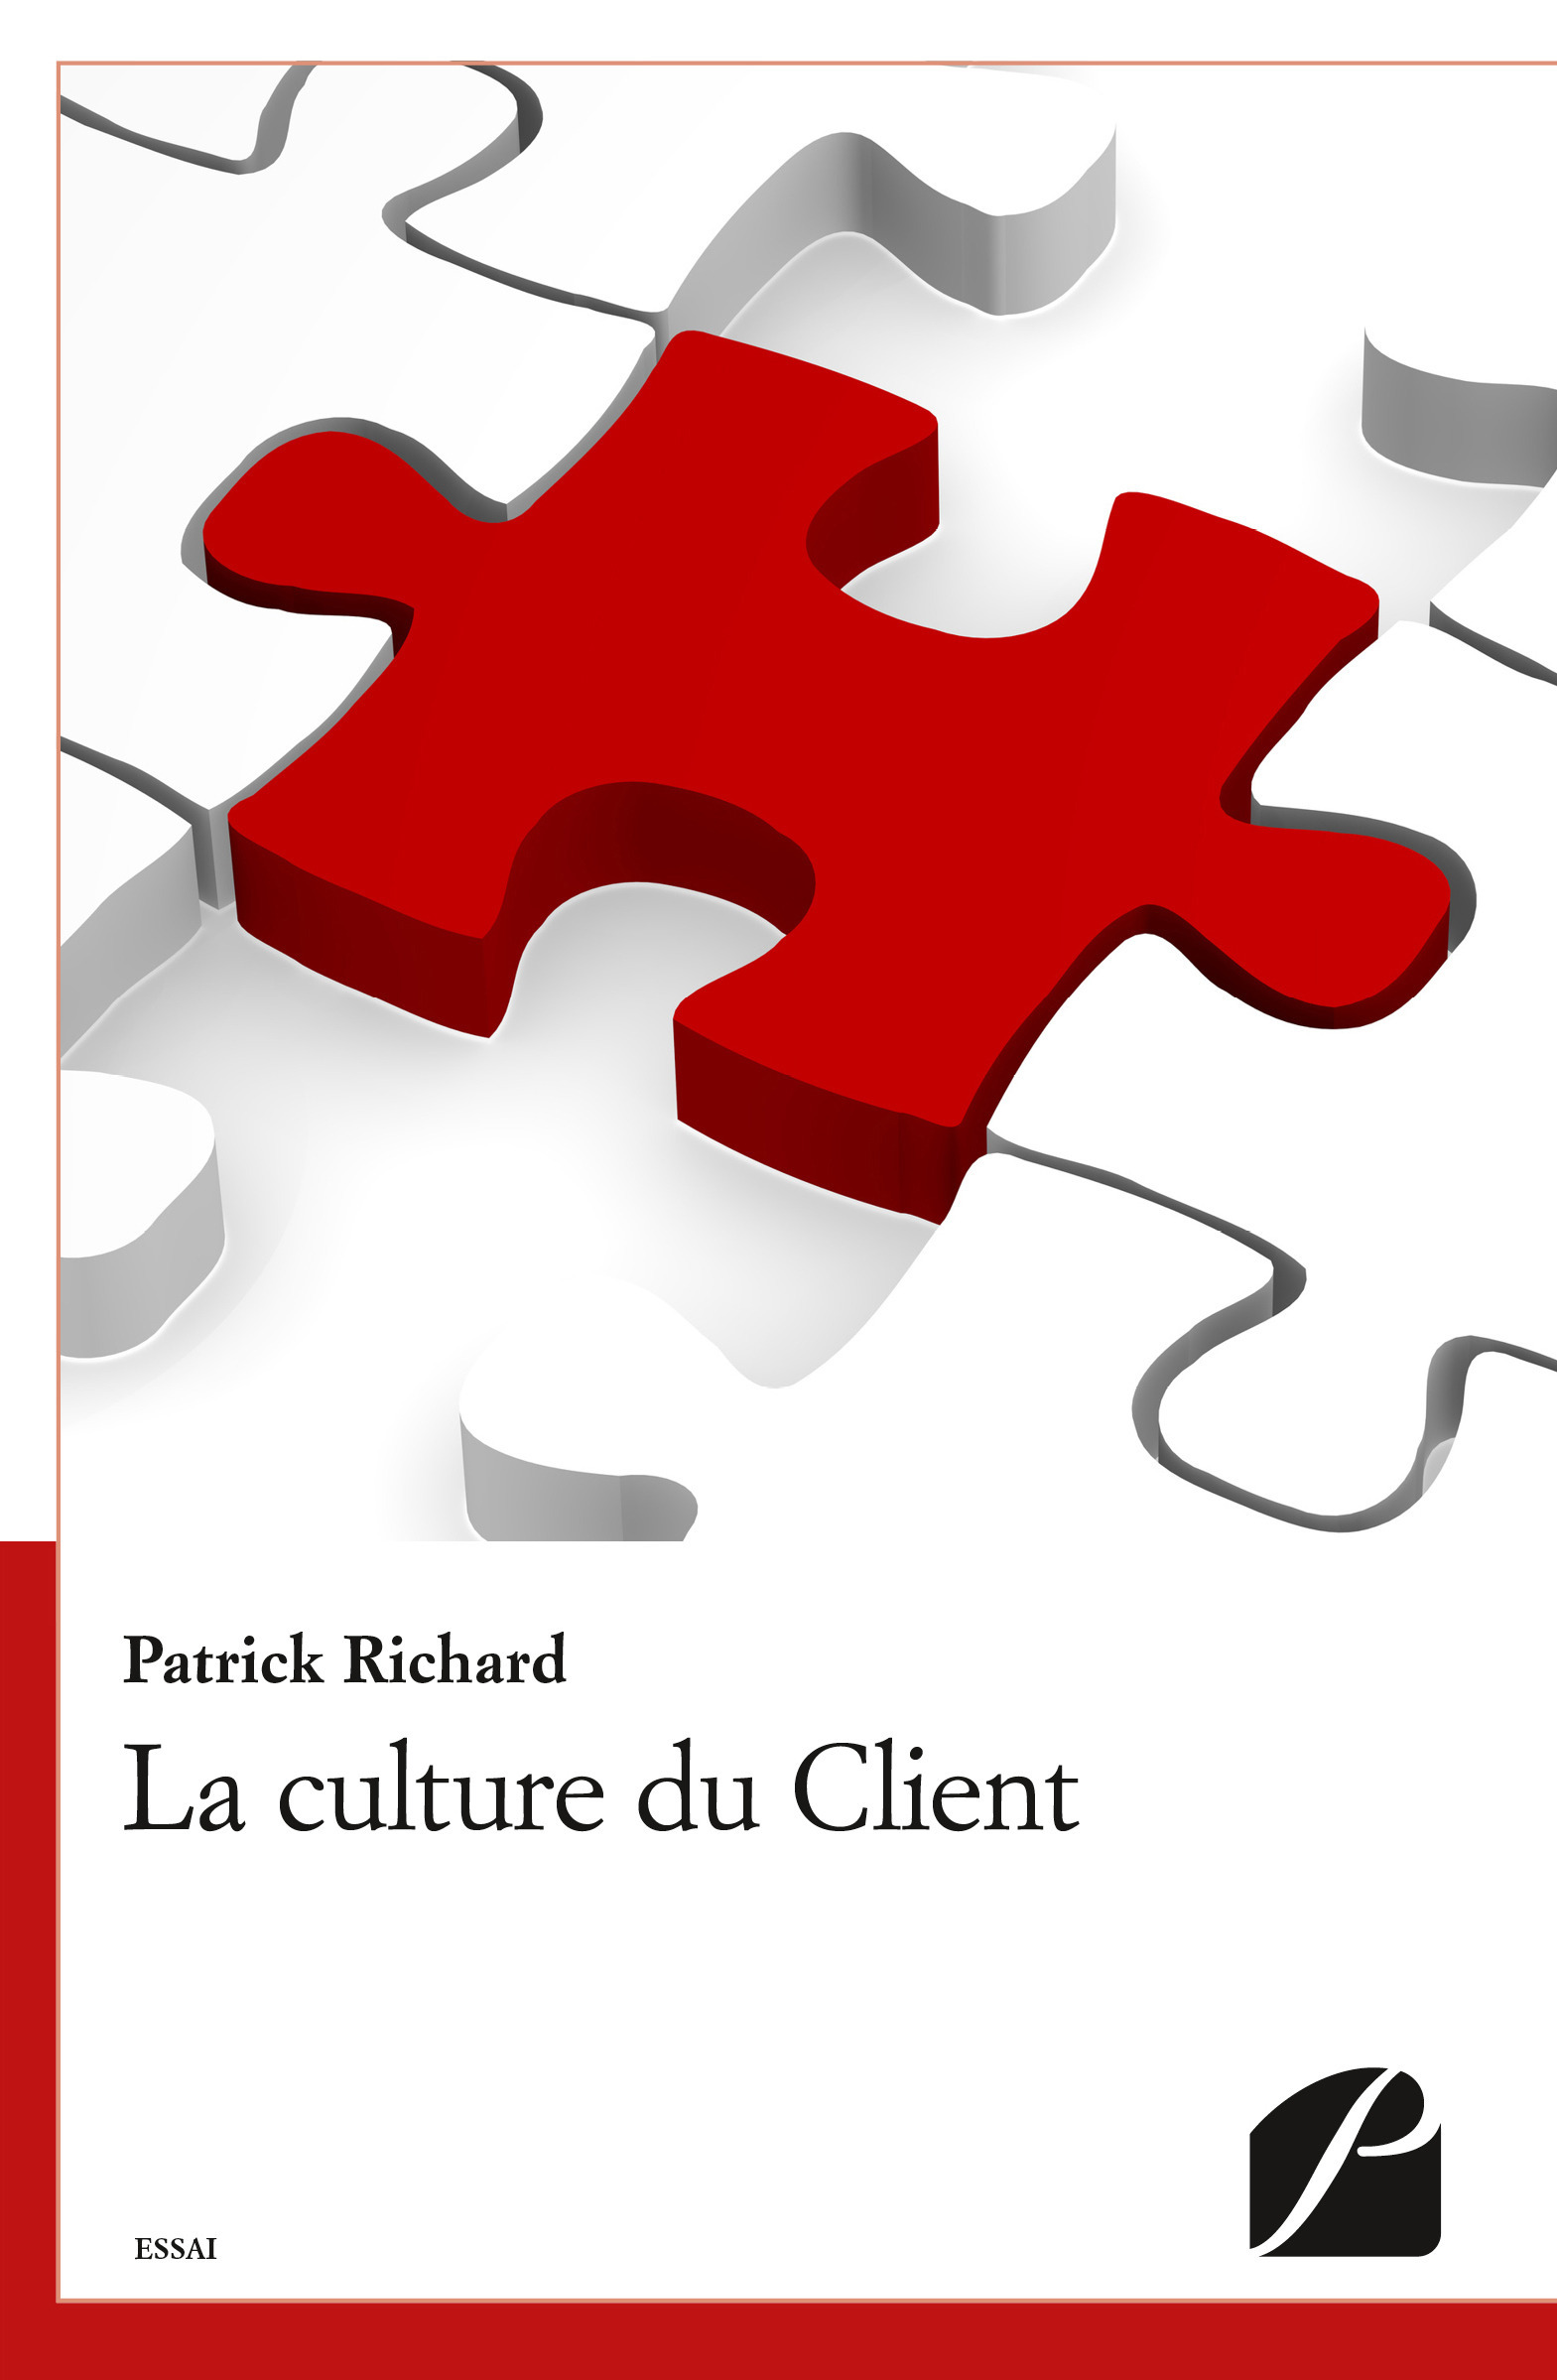 Patrick Richard La culture du Client